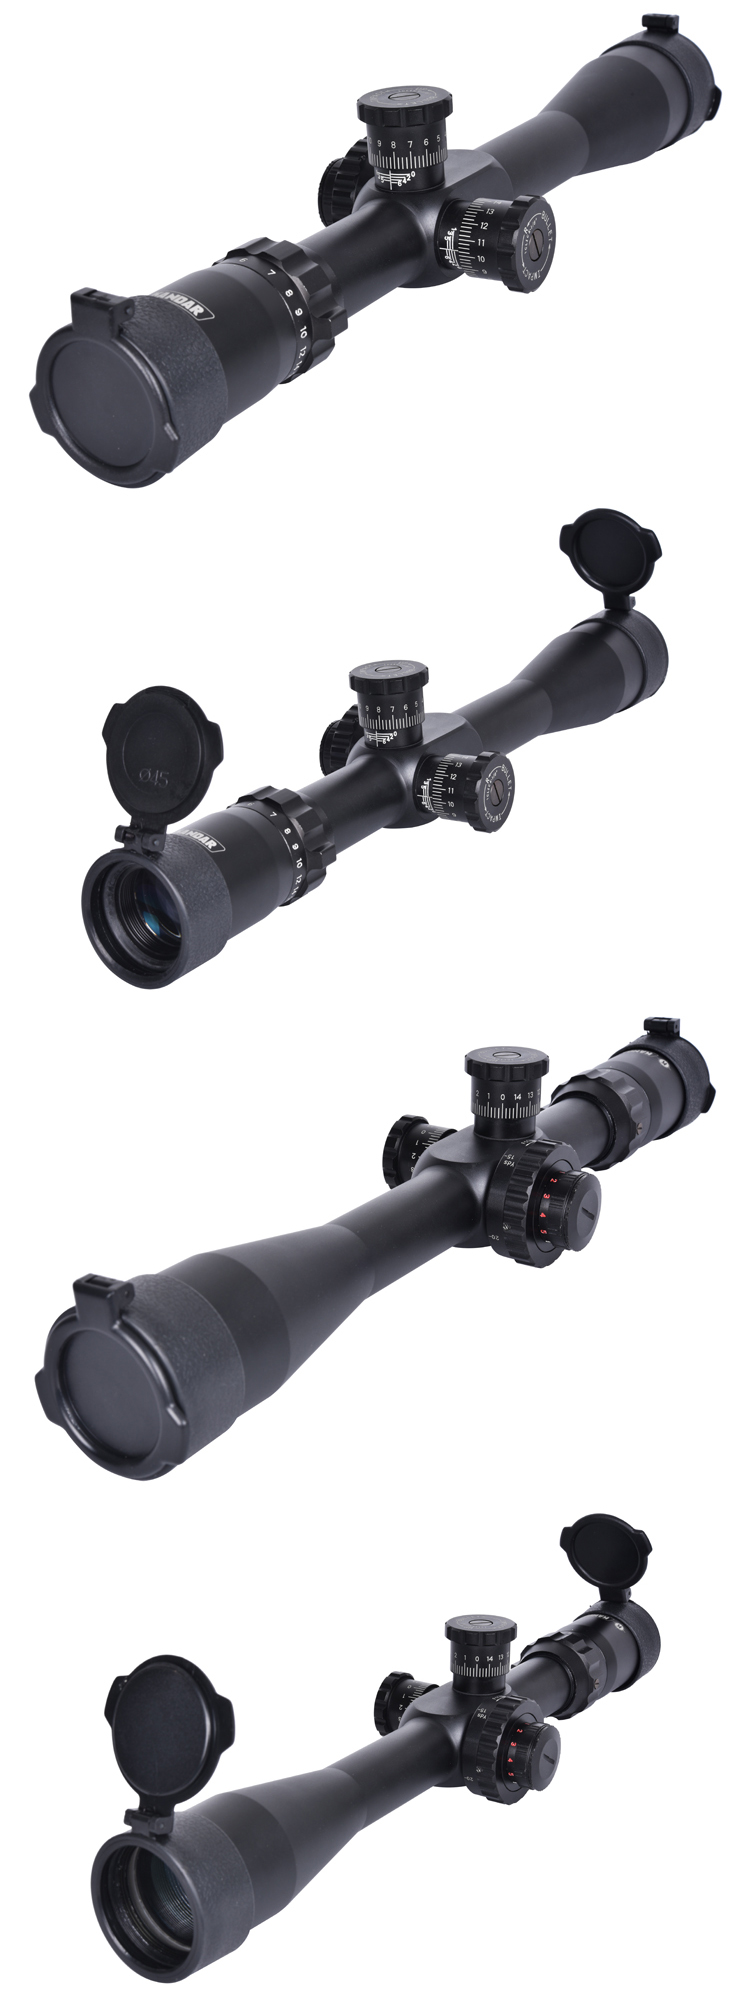 6-24x44 Long Range Target Shooting Riflescope First Focal Plane Airsoft Sight Red and Green Illuminated Optics Scope